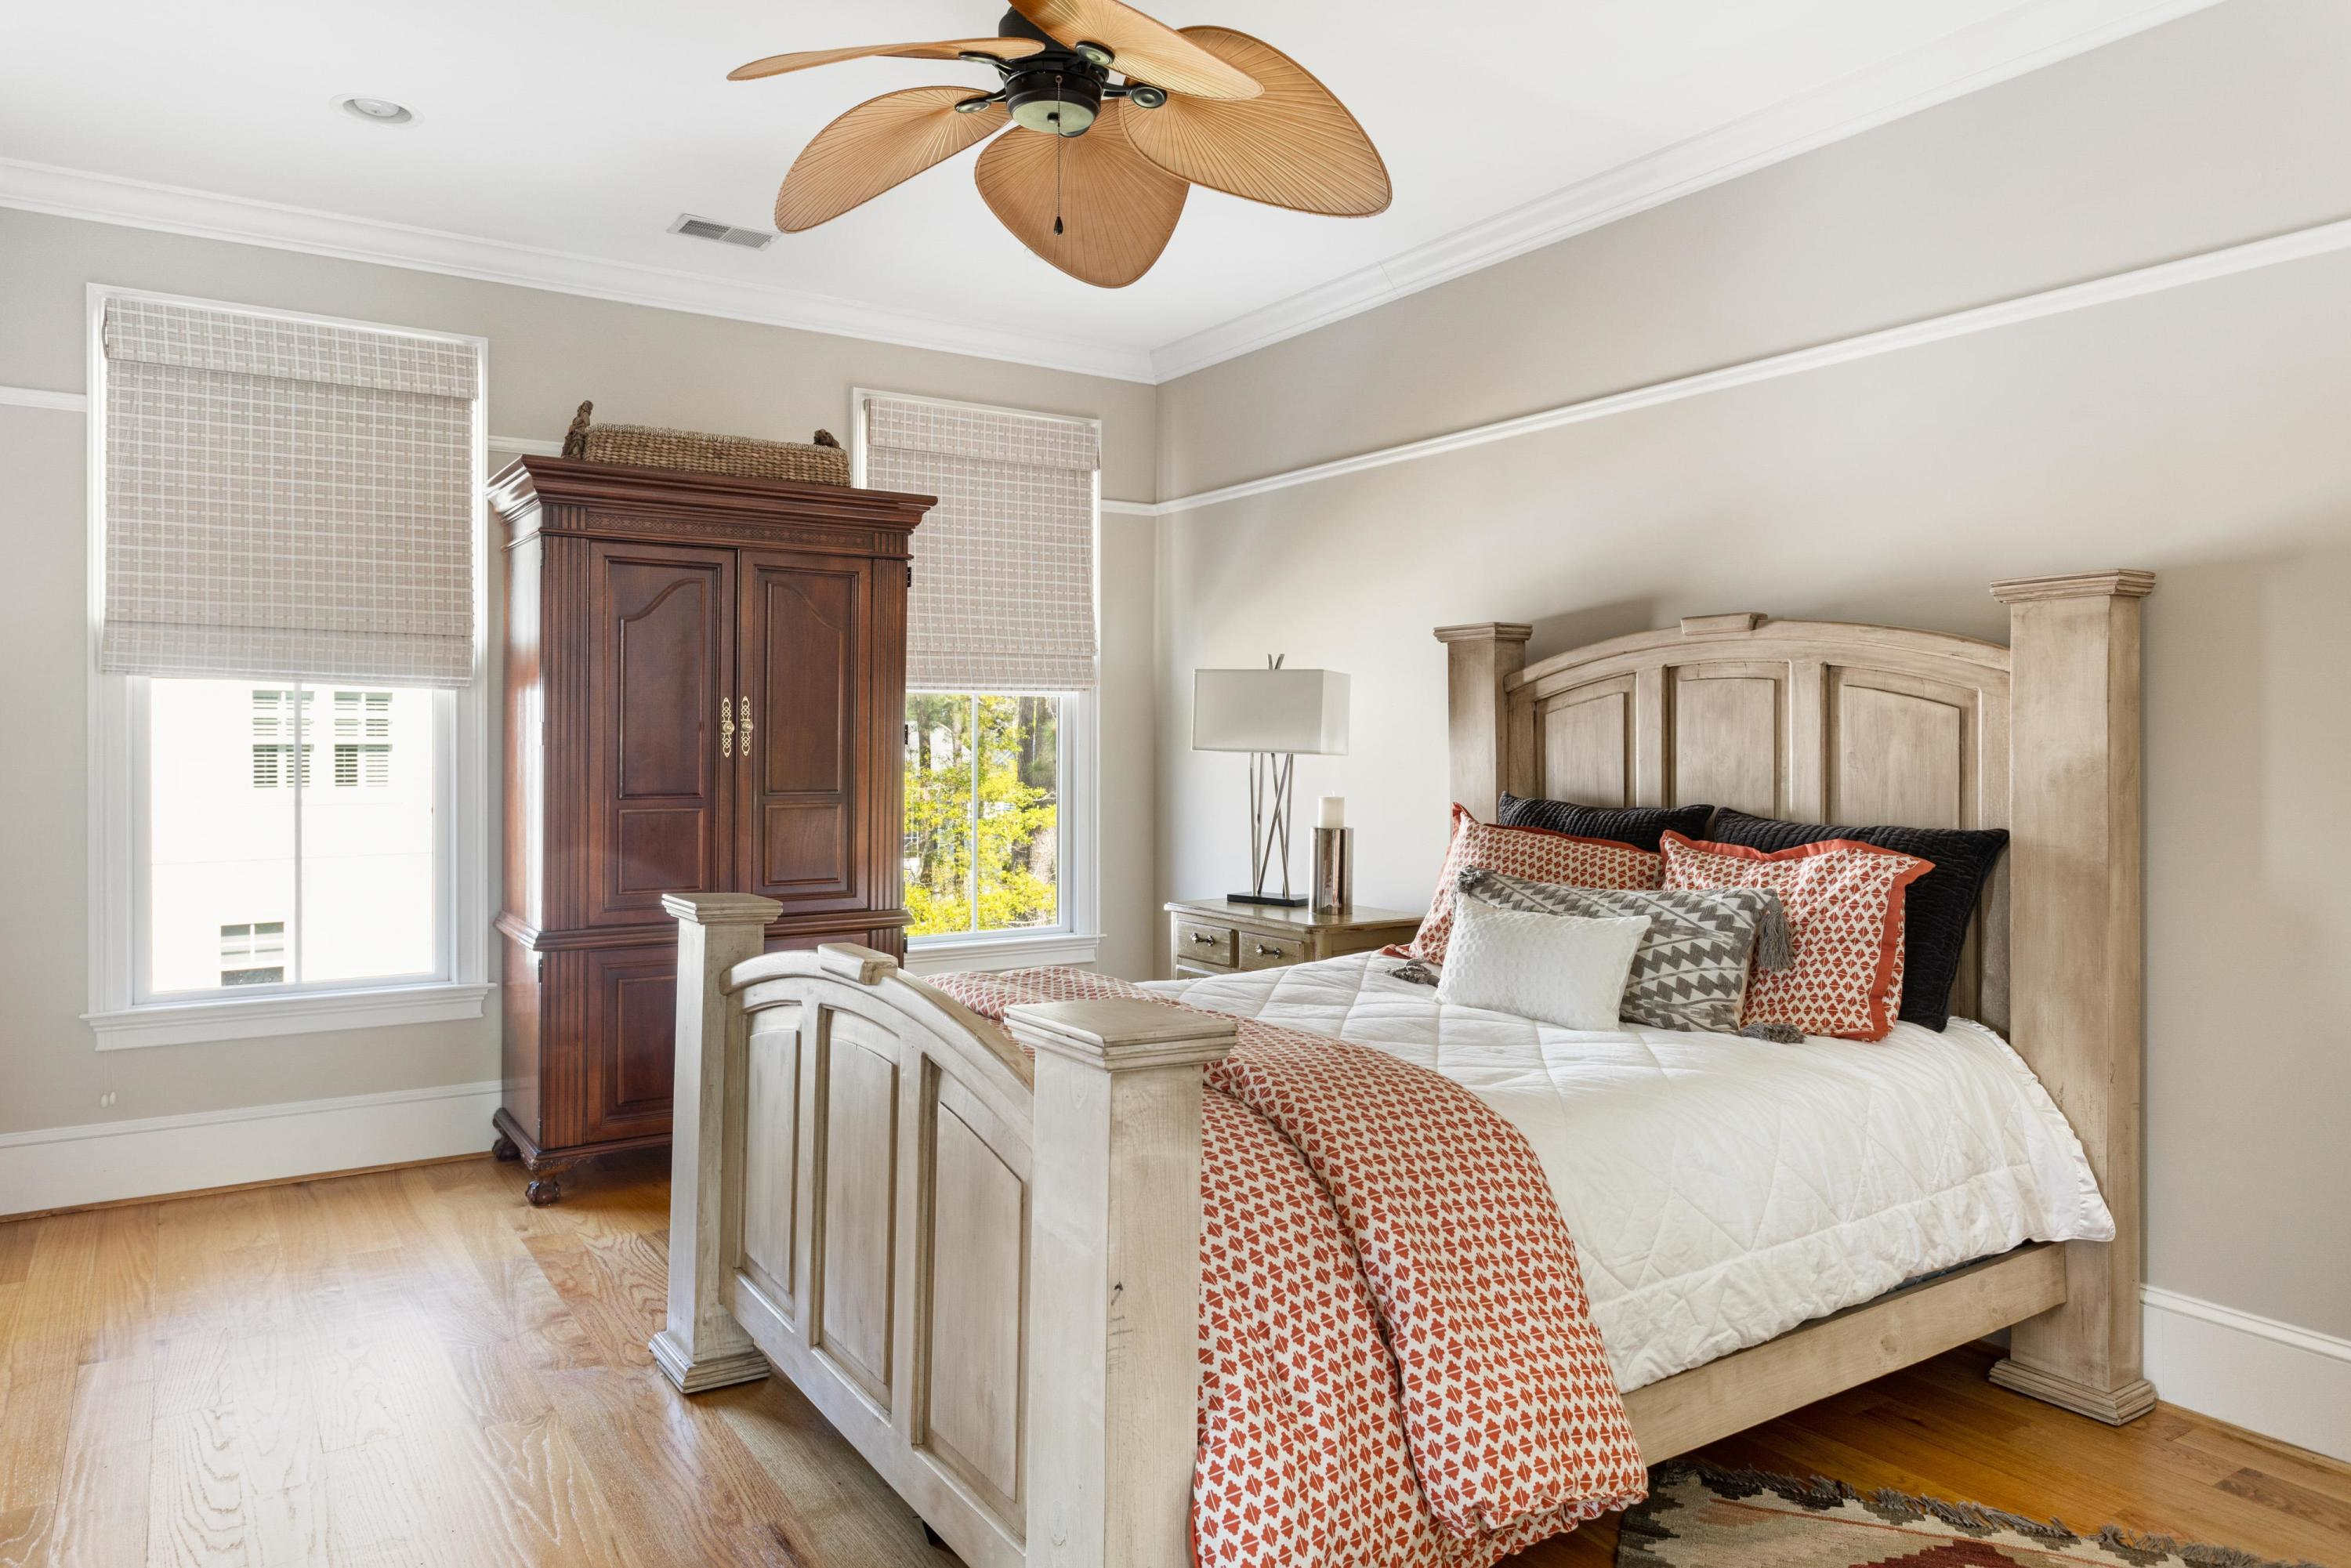 Rivertowne Country Club Homes For Sale - 1629 Rivertowne Country Club, Mount Pleasant, SC - 19